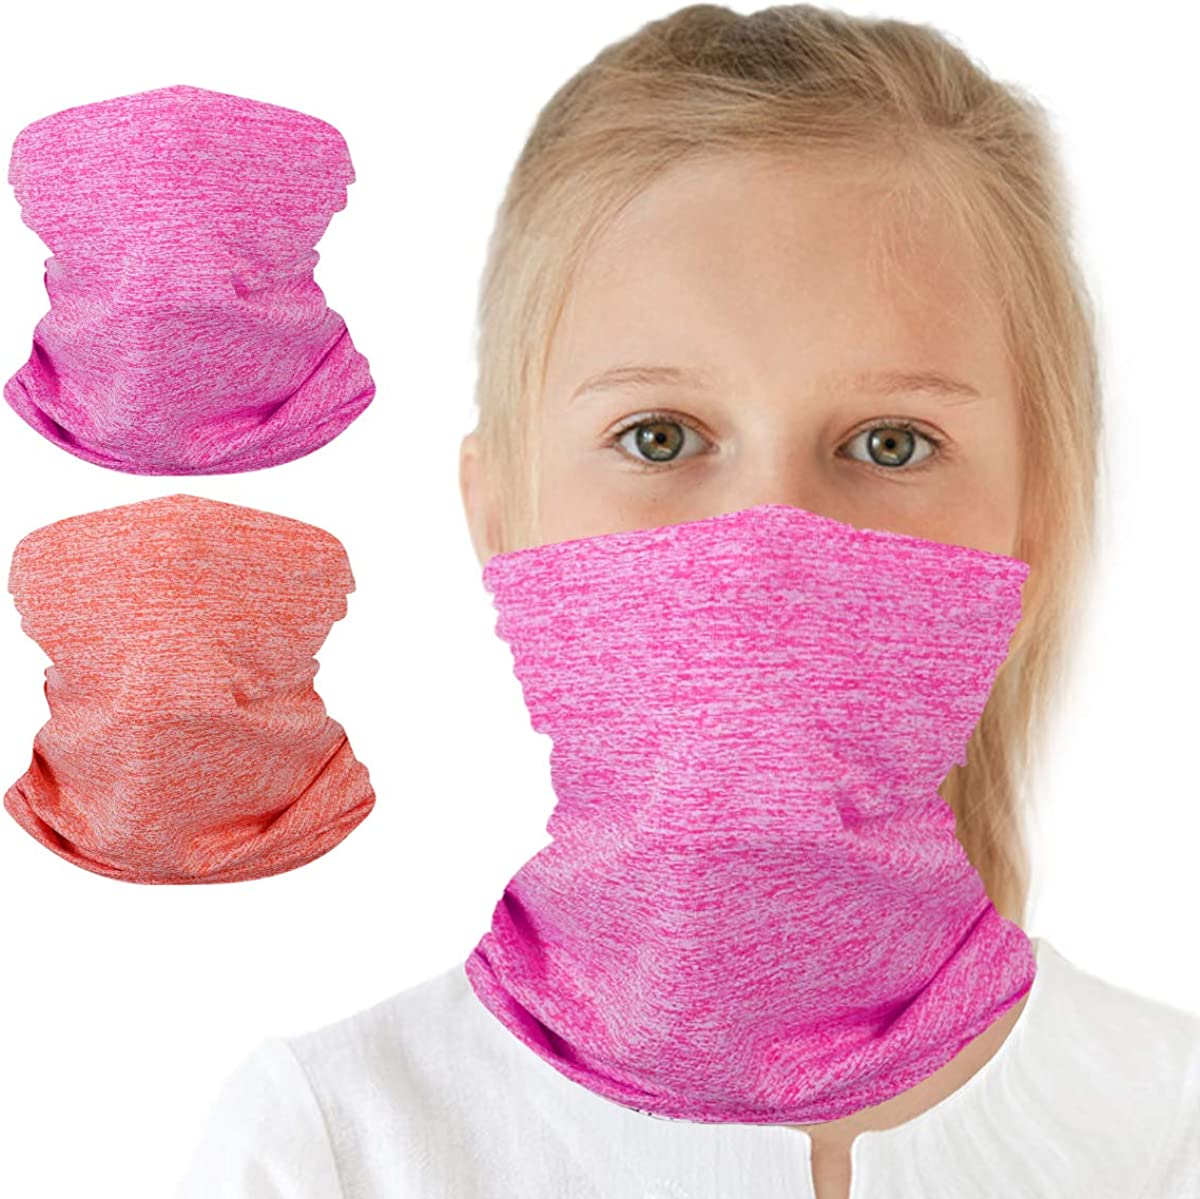 6-14 Years Olds Kids UV Protection Face Cover Neck Gaiter for Hot Summer Cycling Hiking Sport Outdoor